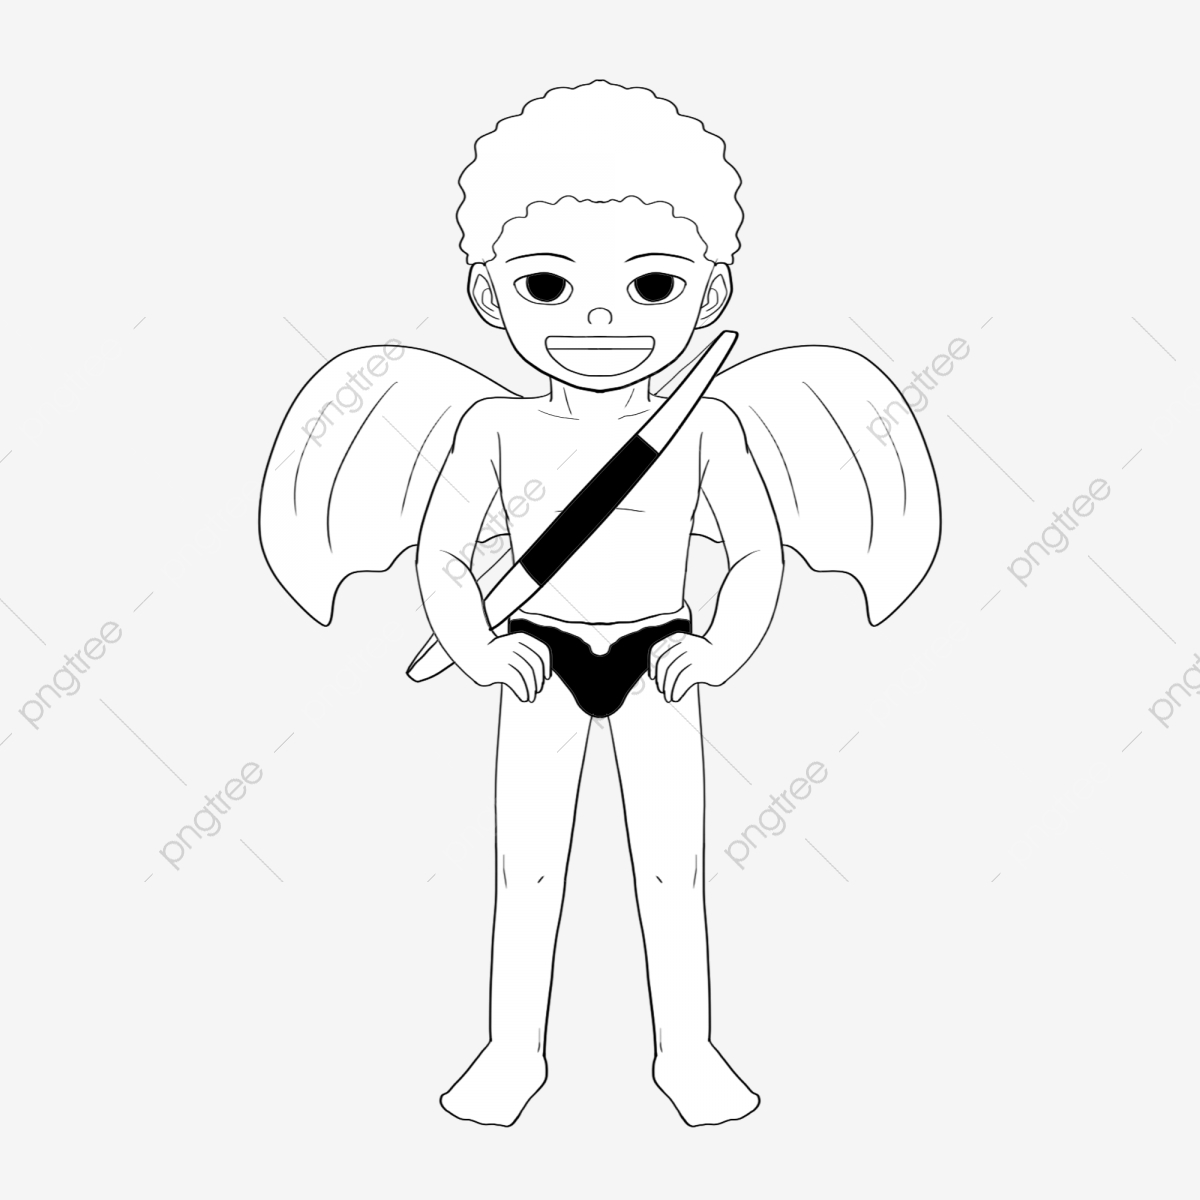 Naughty line drawing cupid full body black bow and arrow